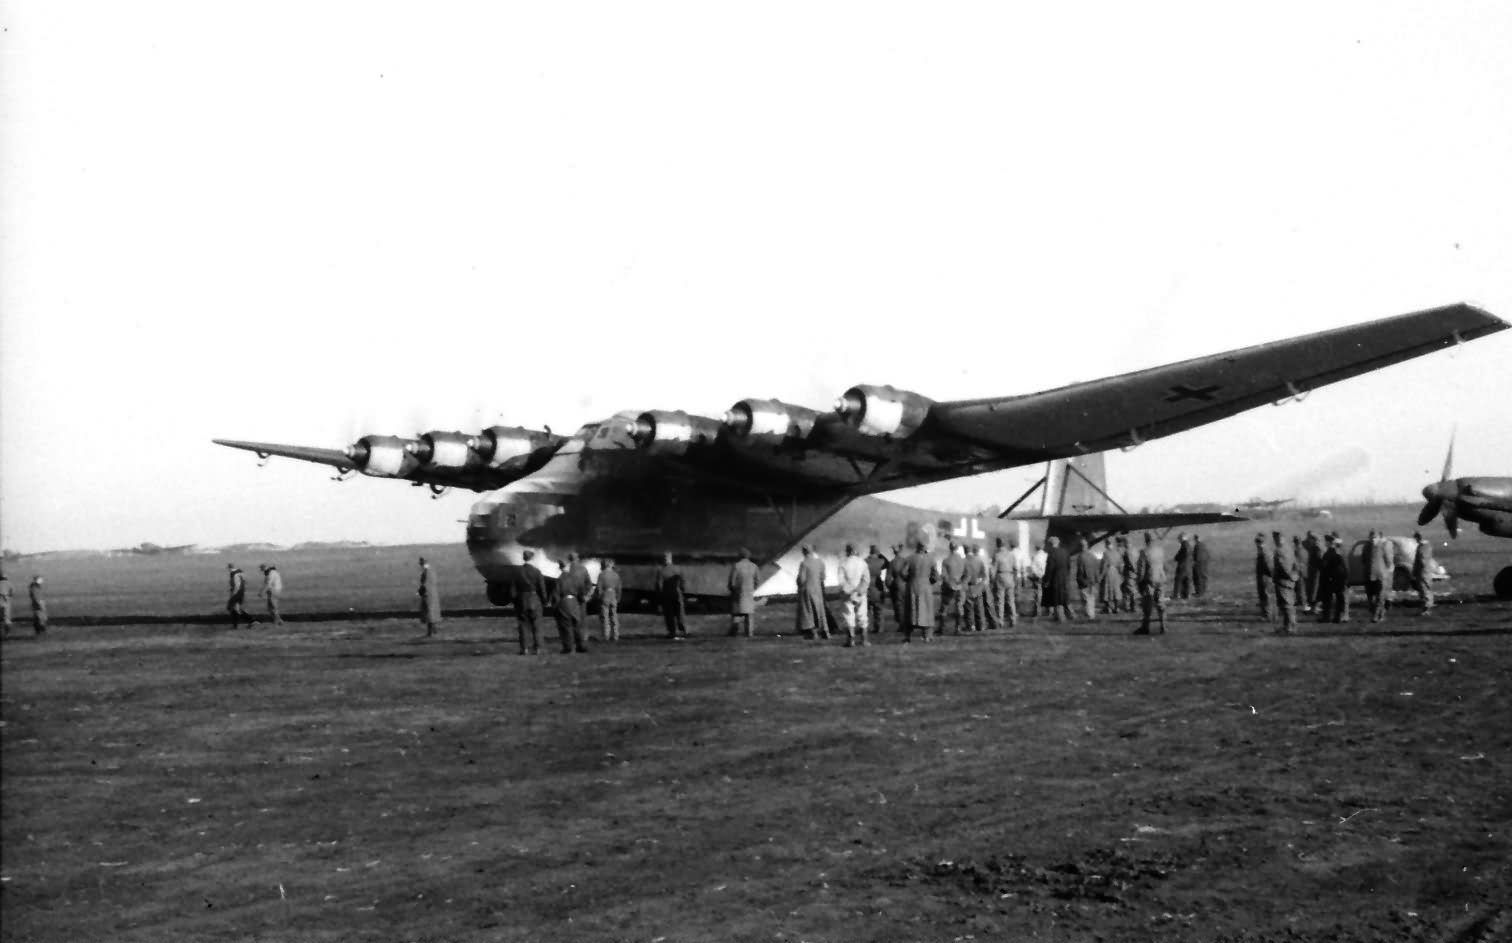 Messerschmitt Me 323 airfield